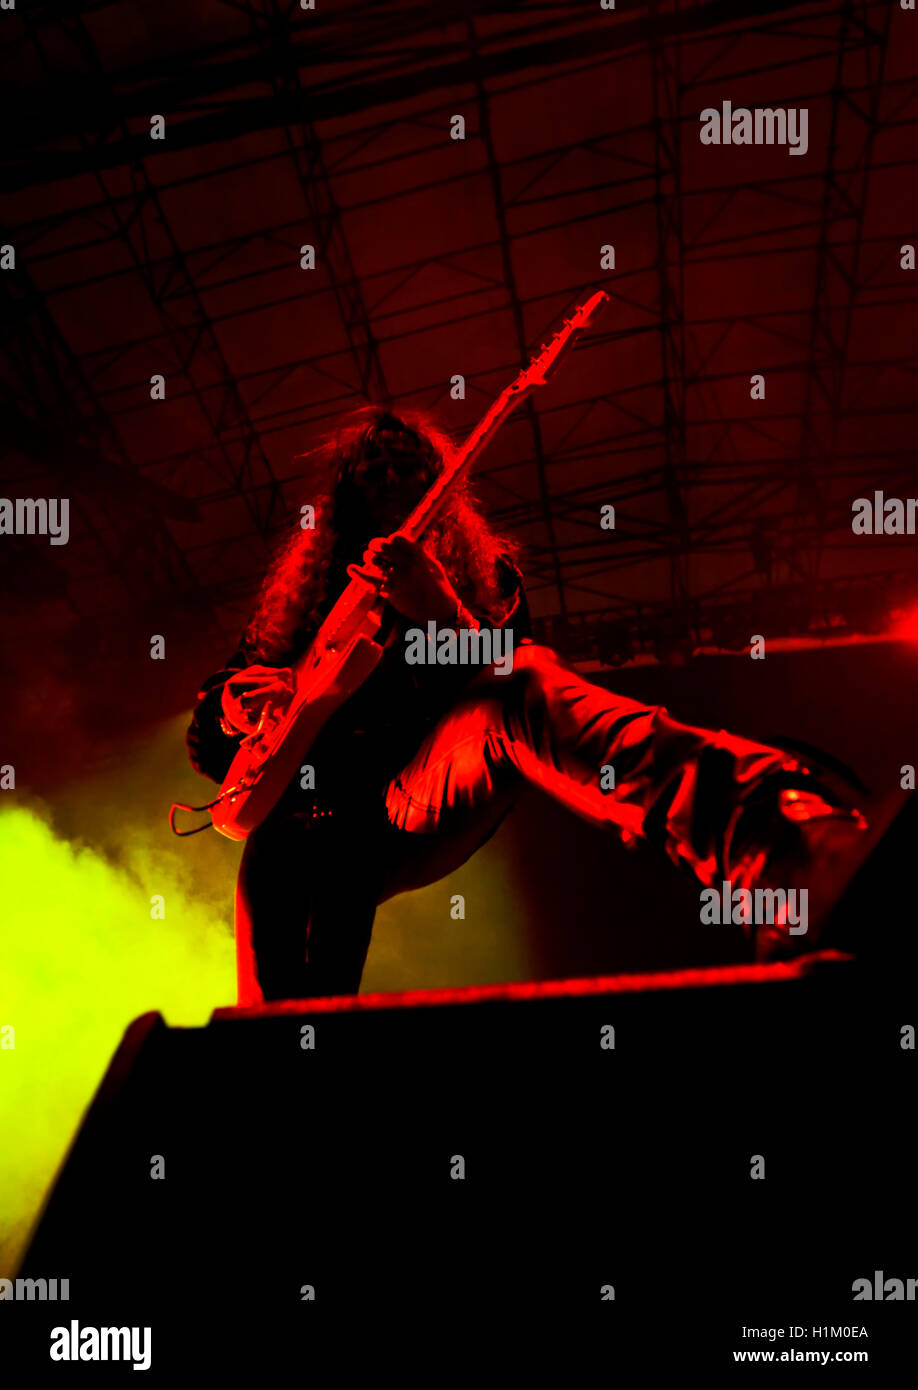 September 17, 2016, Irvine California, Yngwie Malmsteen on stage at the Sirius XM Hair Nation Fest - Stock Image